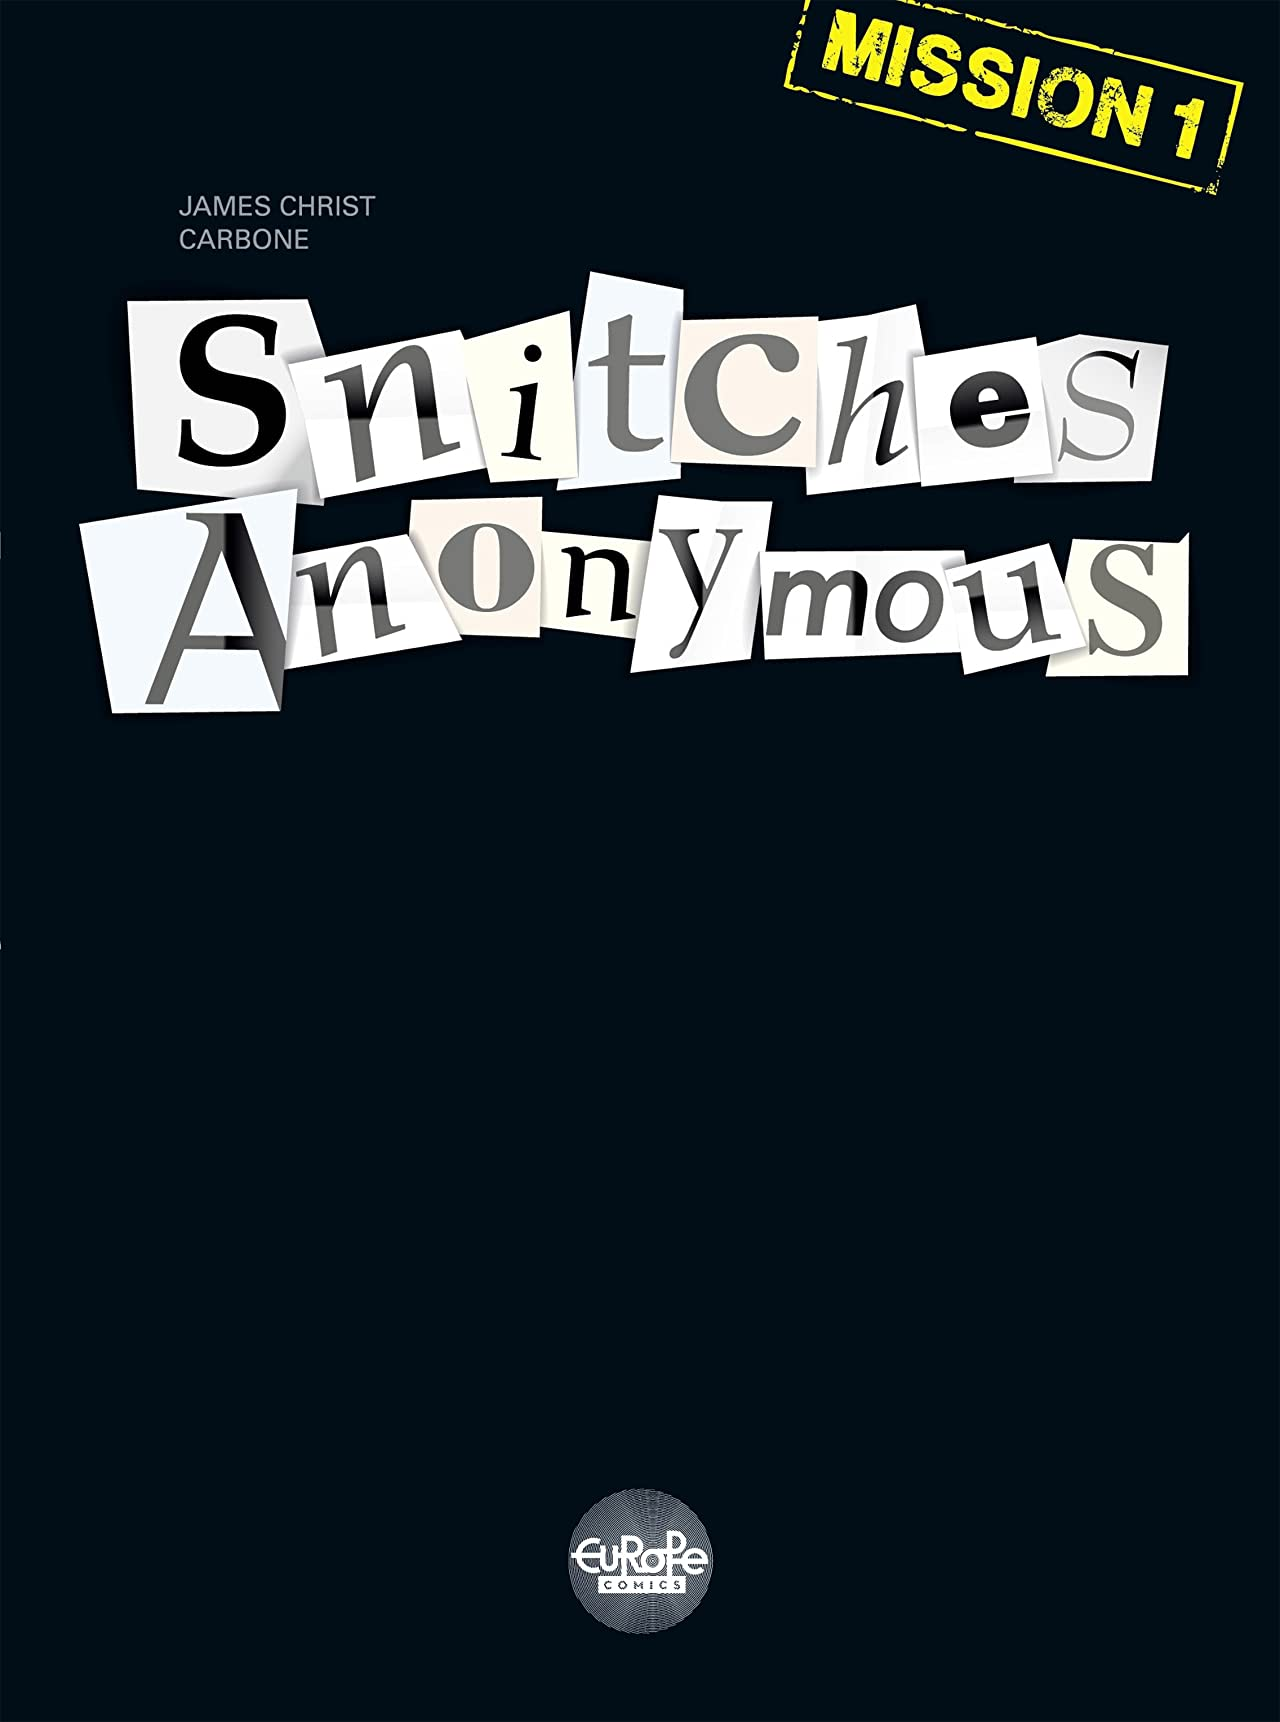 Snitches Anonymous Vol. 1: Mission 1